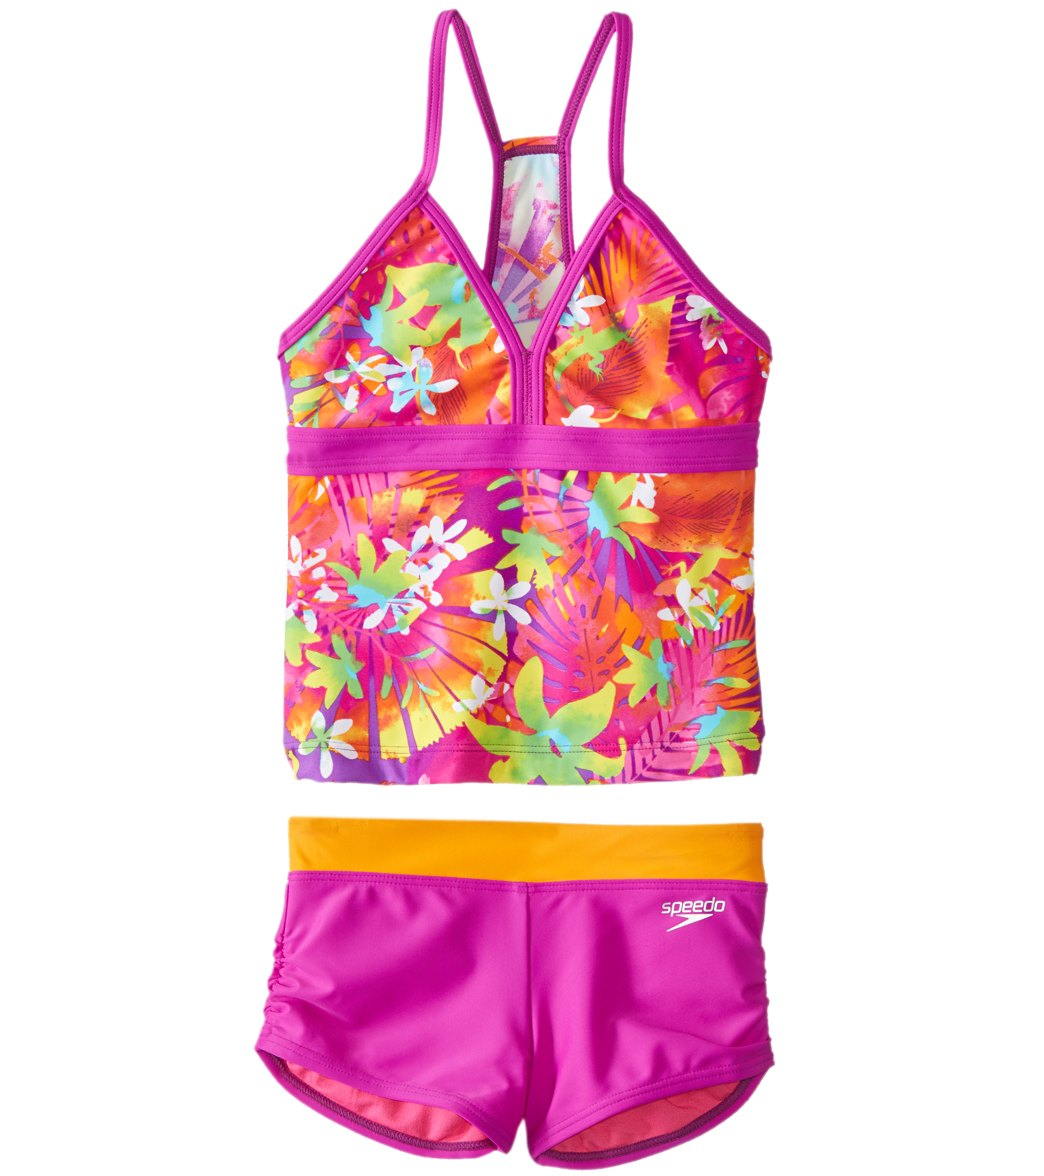 a991b9dcf9 Speedo Girls' Jungle Floral Two Piece Boyshort Tankini Set (7-16) at  SwimOutlet.com